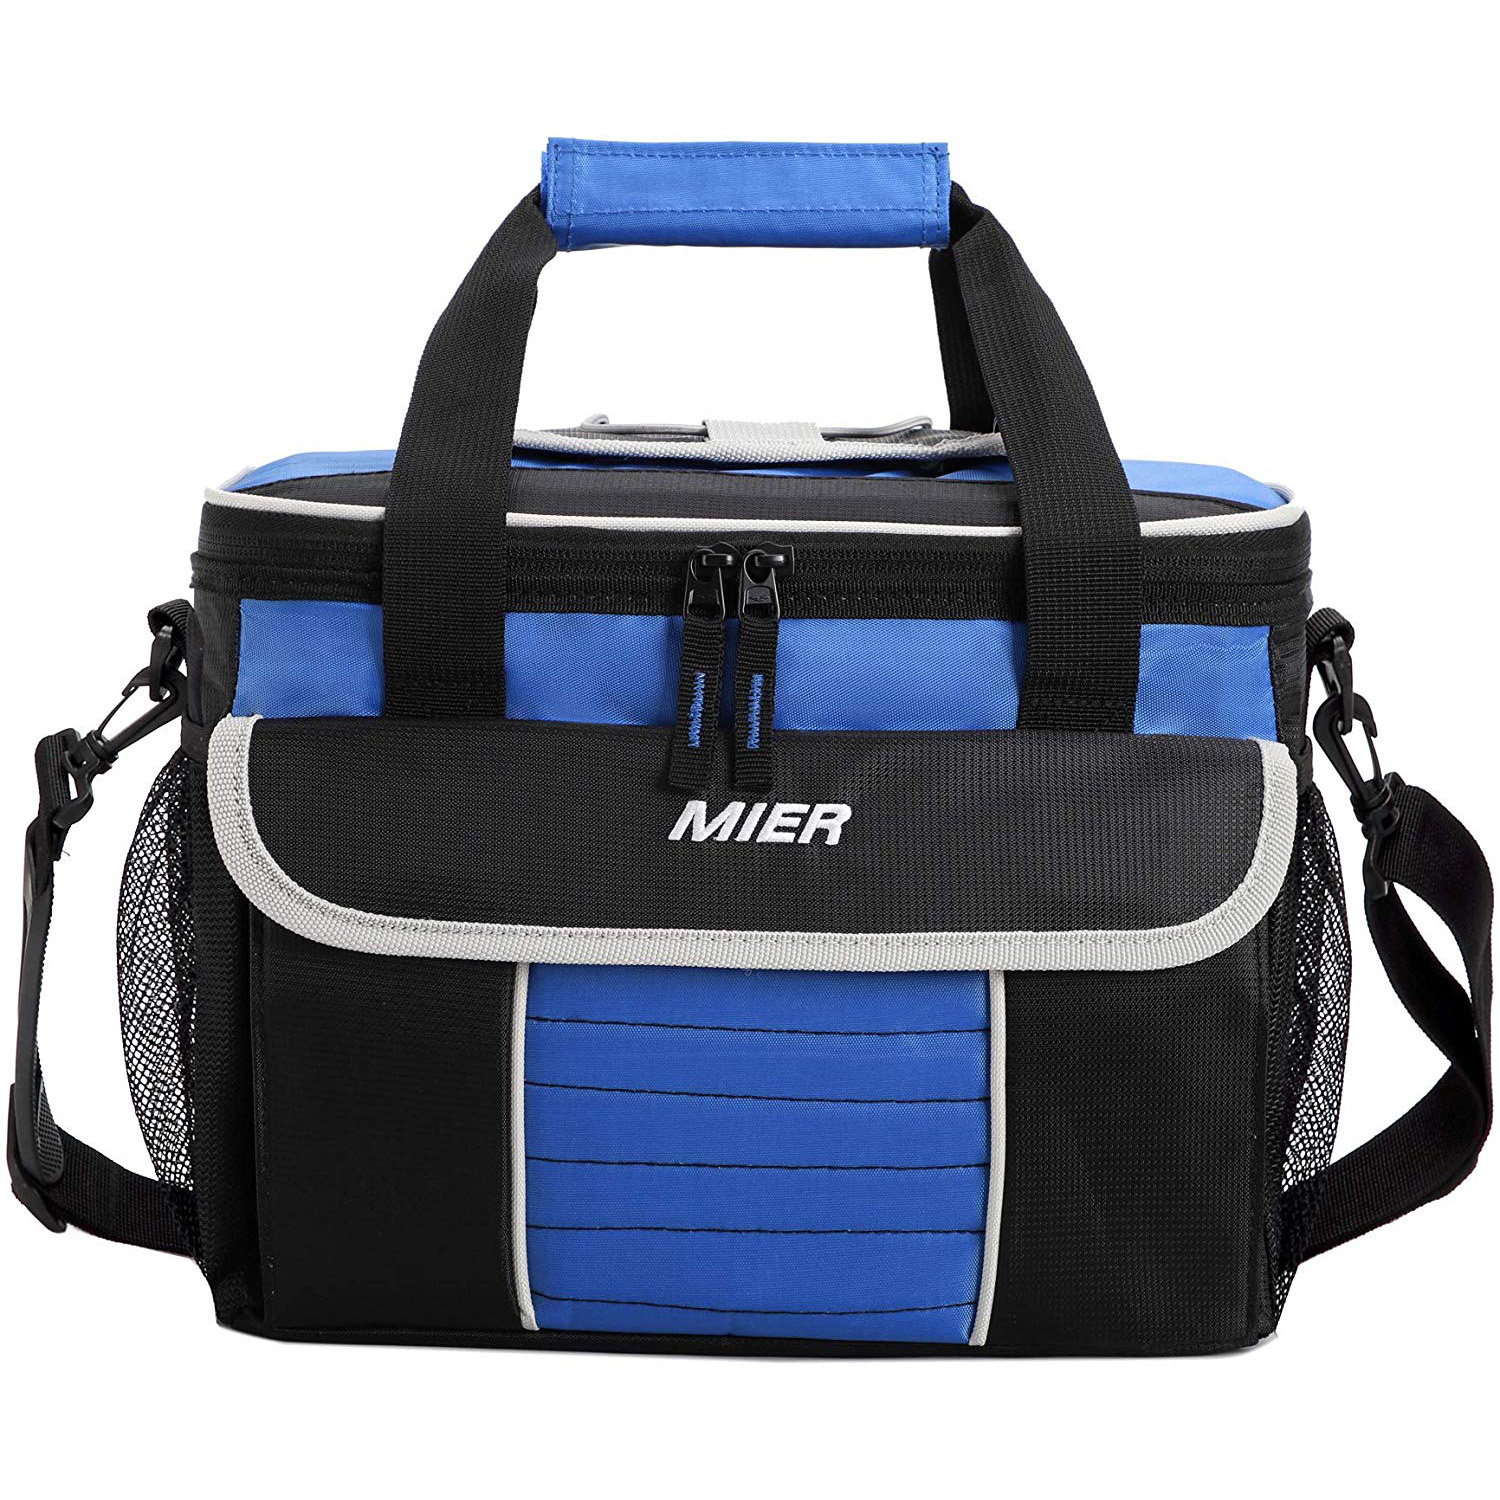 MIER Large Soft Cooler Bag Picnic Cooler Tote with Dispensing Lid